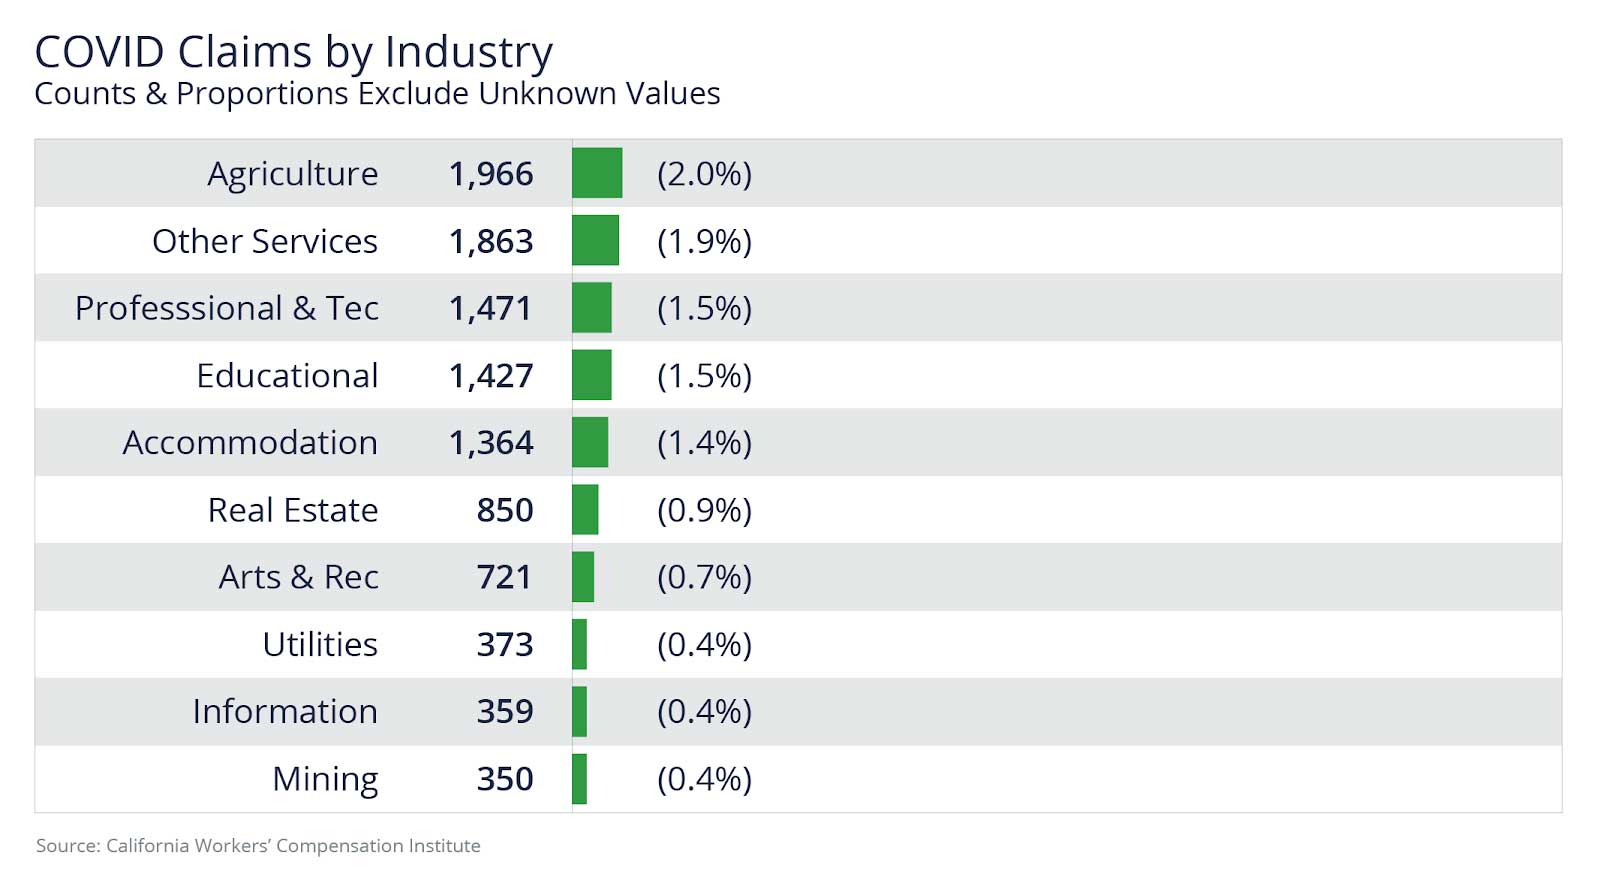 COVID claims lowest in mining, information, and utilities industries.